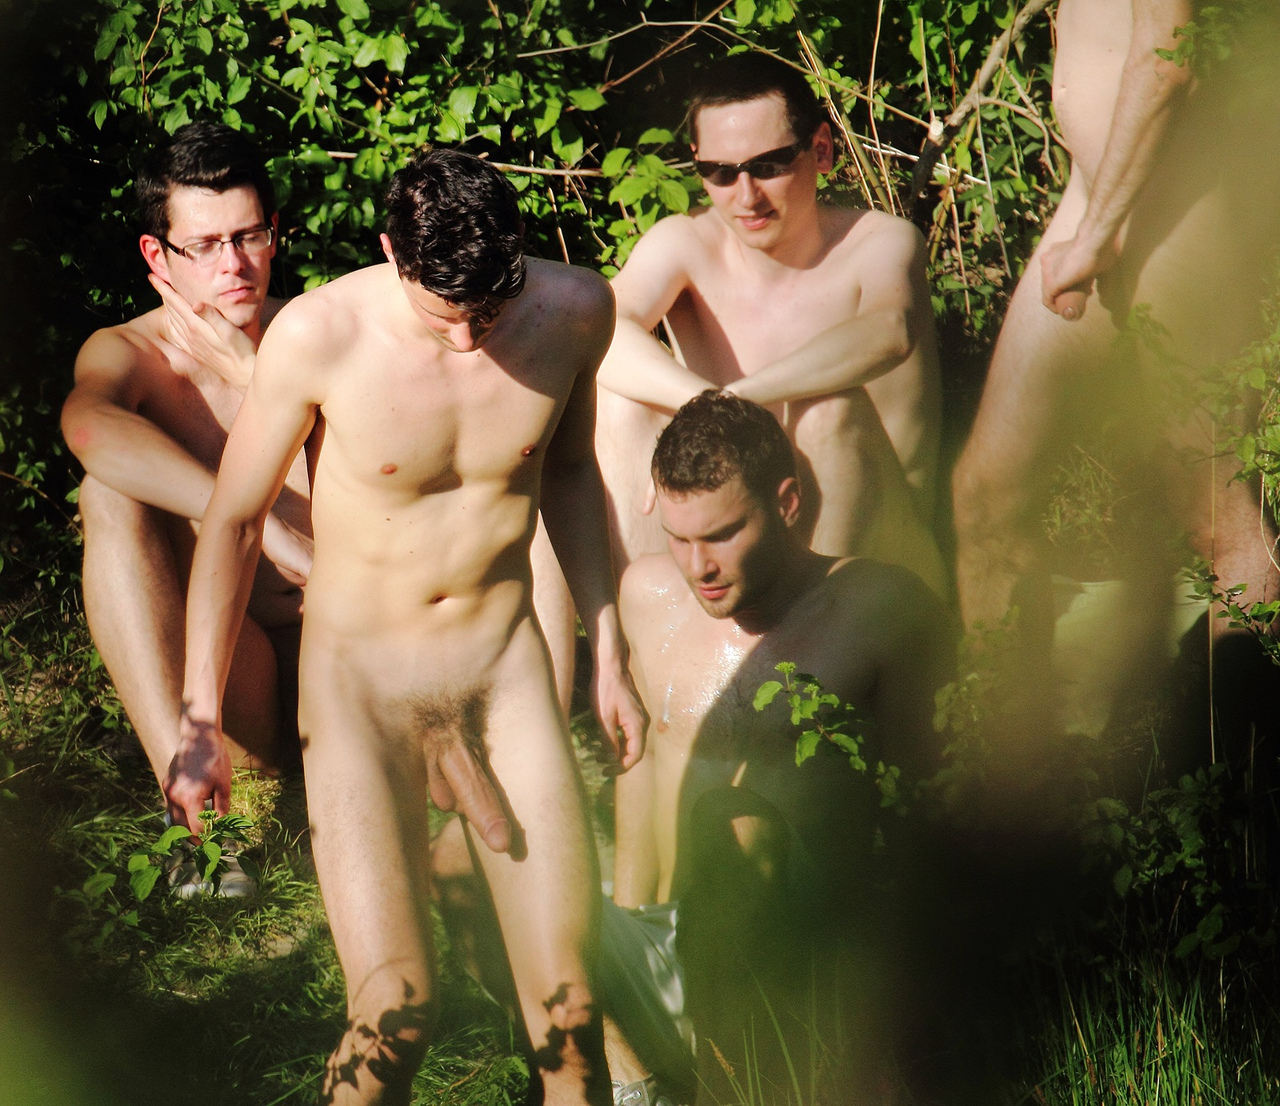 All male nude outdoors gay coffee shop boy 8